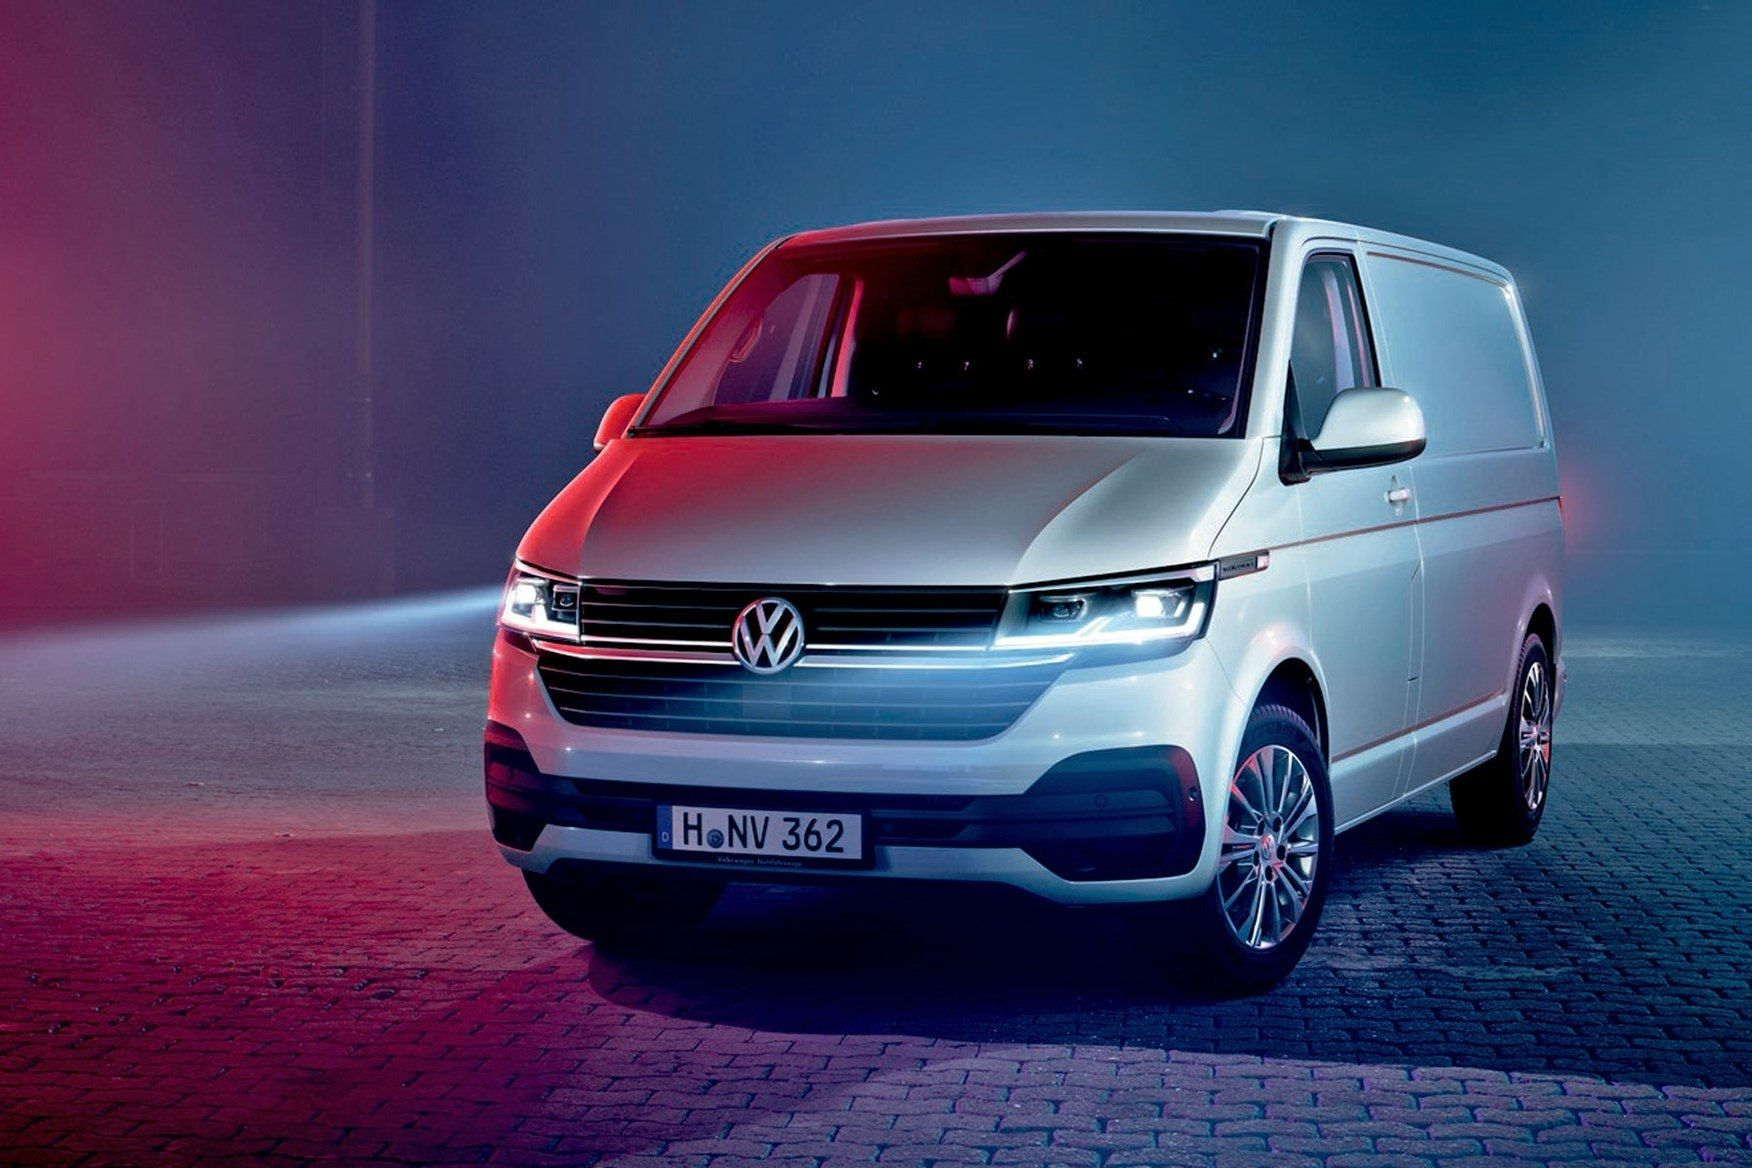 Top Vw Kombi 2020 Performance And New Engine Volkswagen Transporter Vw Transporter Volkswagen